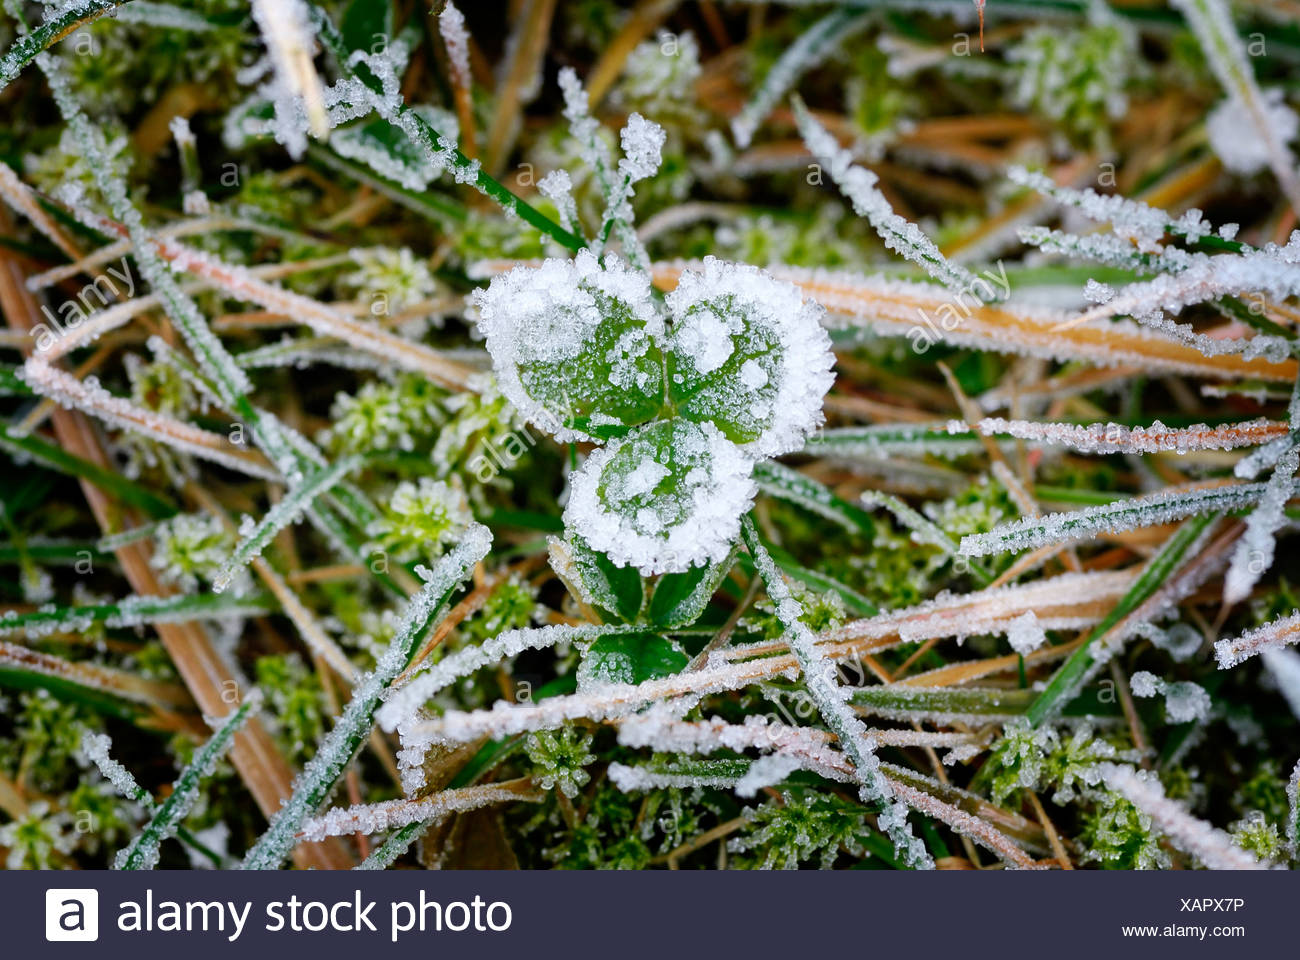 Clover leaf with hoarfrost in winter - Stock Image